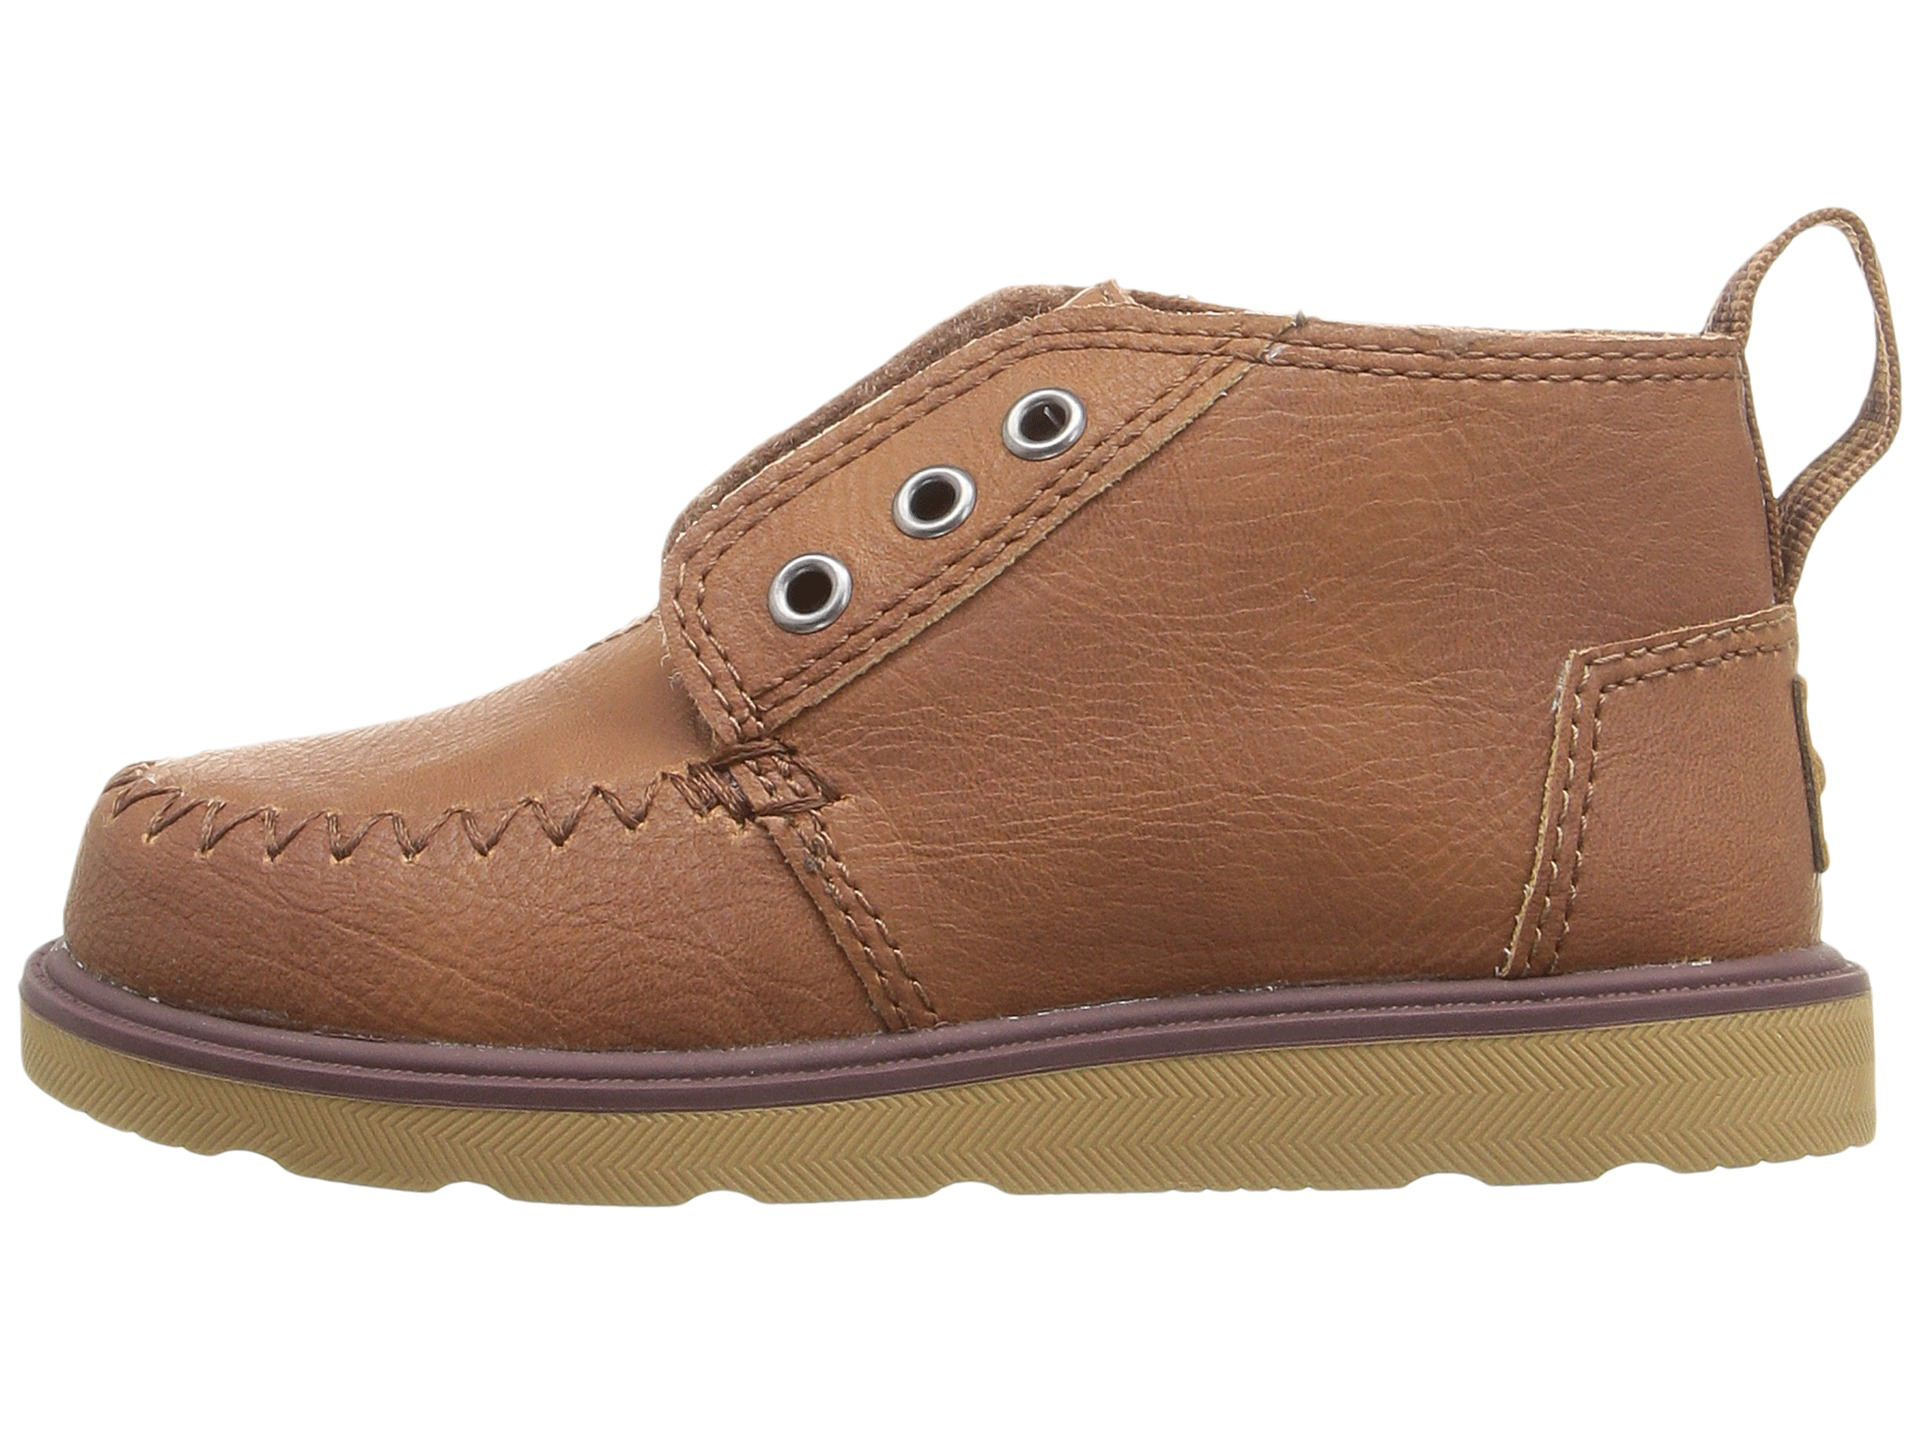 Free shipping and returns on TOMS Chukka Boot (Baby, Walker, Toddler, Little Kid & Big Kid) at disborunmaba.ga A moc-stitched toe adds cool style to an adorably handsome chukka boot cast in a smooth, leather-like finish/5(38).